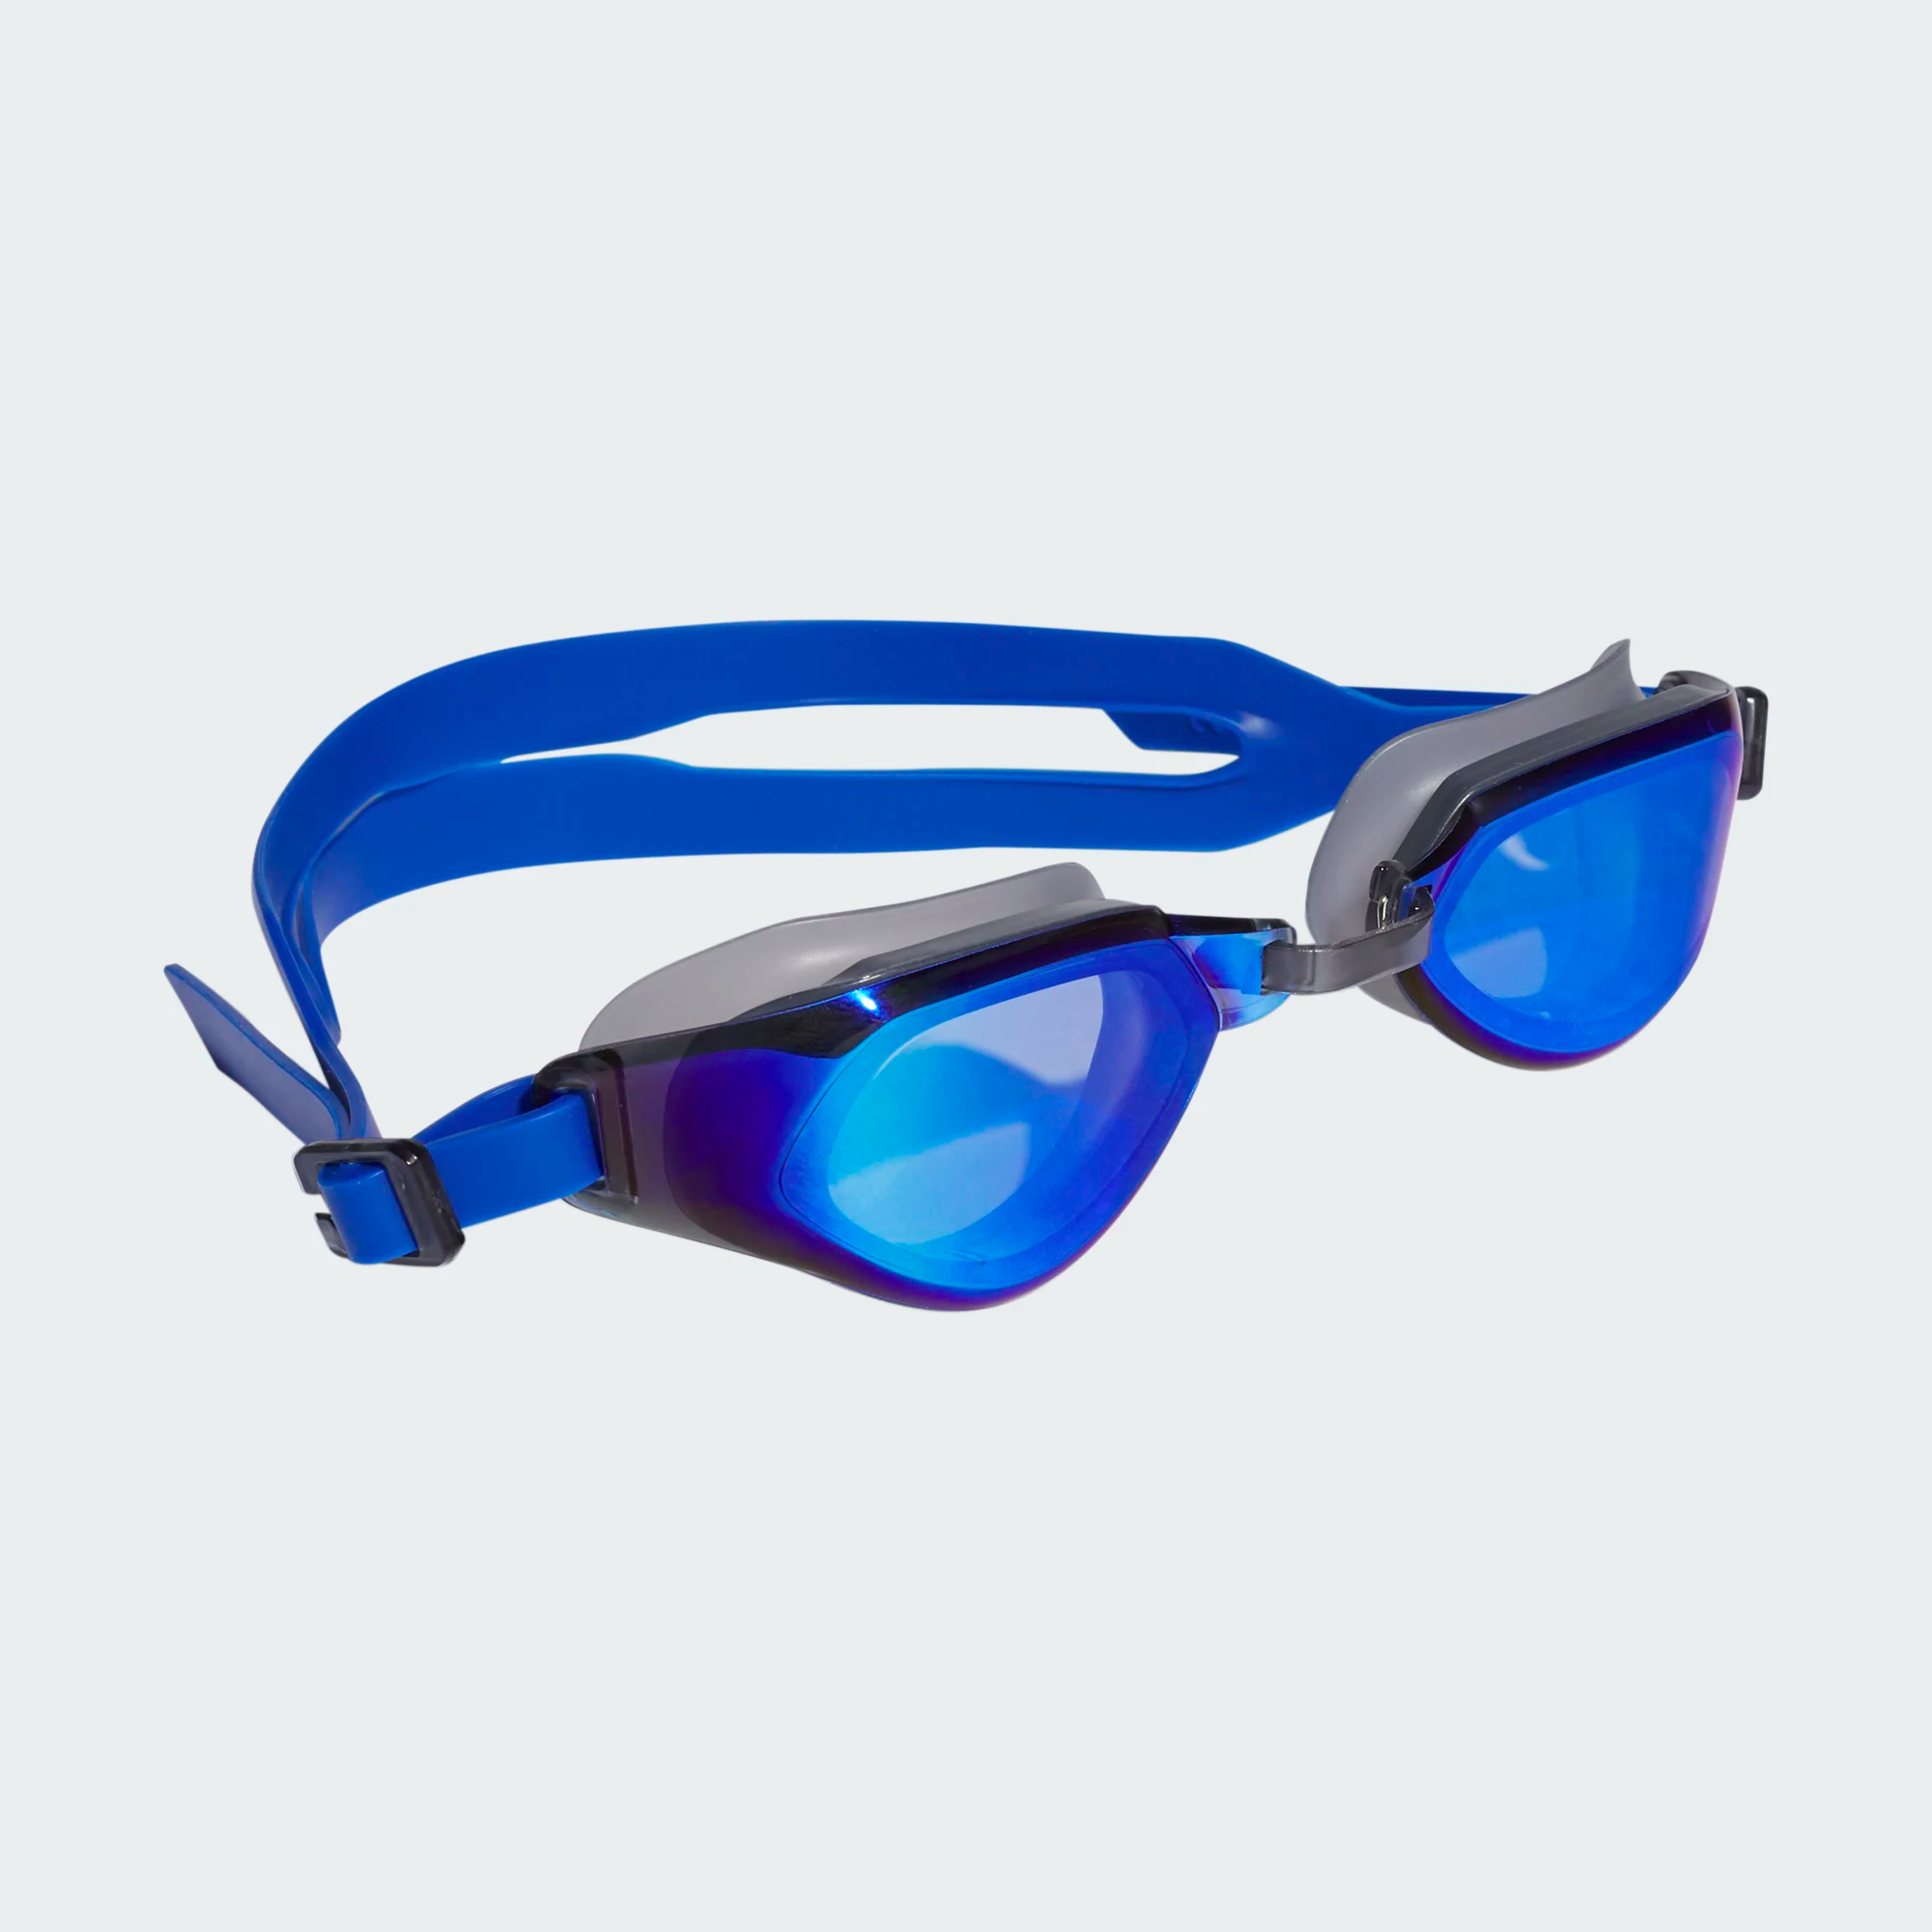 Adidas Persistar Fit Mirrored Kinder Schwimmbrille